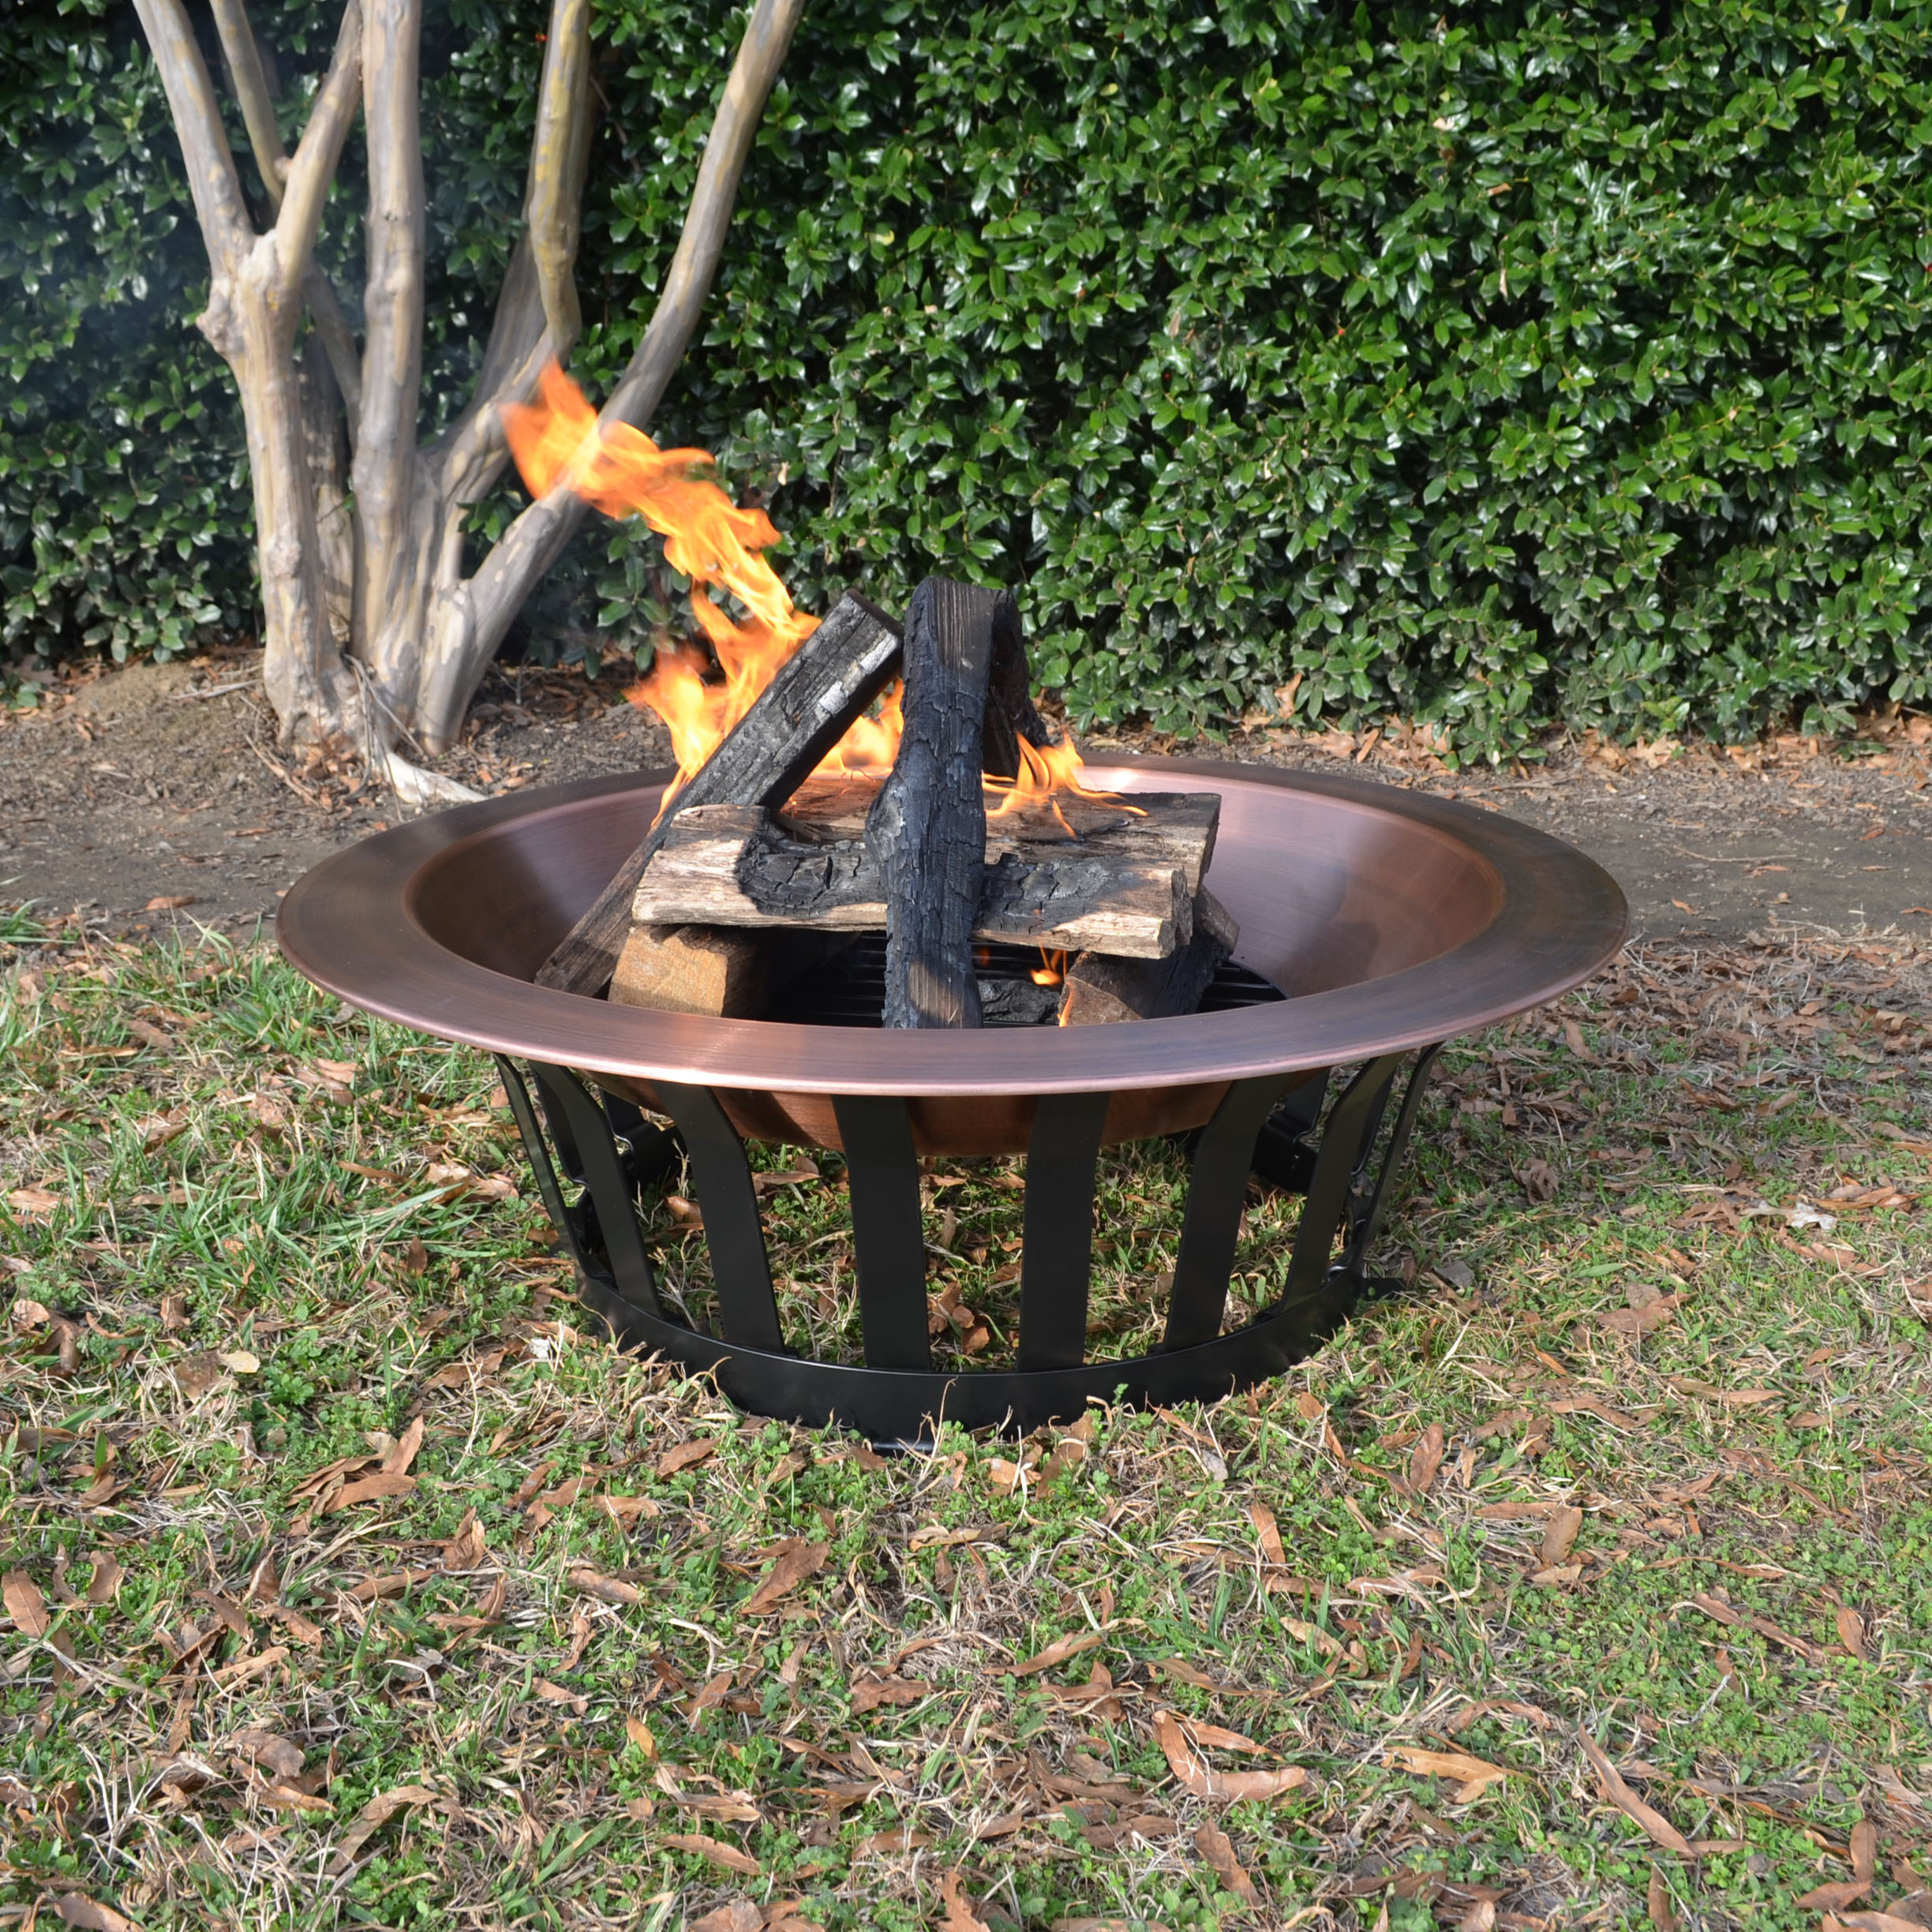 Titan Great Outdoors Copper Outdoor Fire Pit 40 Solid Steel Base Fire Iron Tool Walmart Com Walmart Com